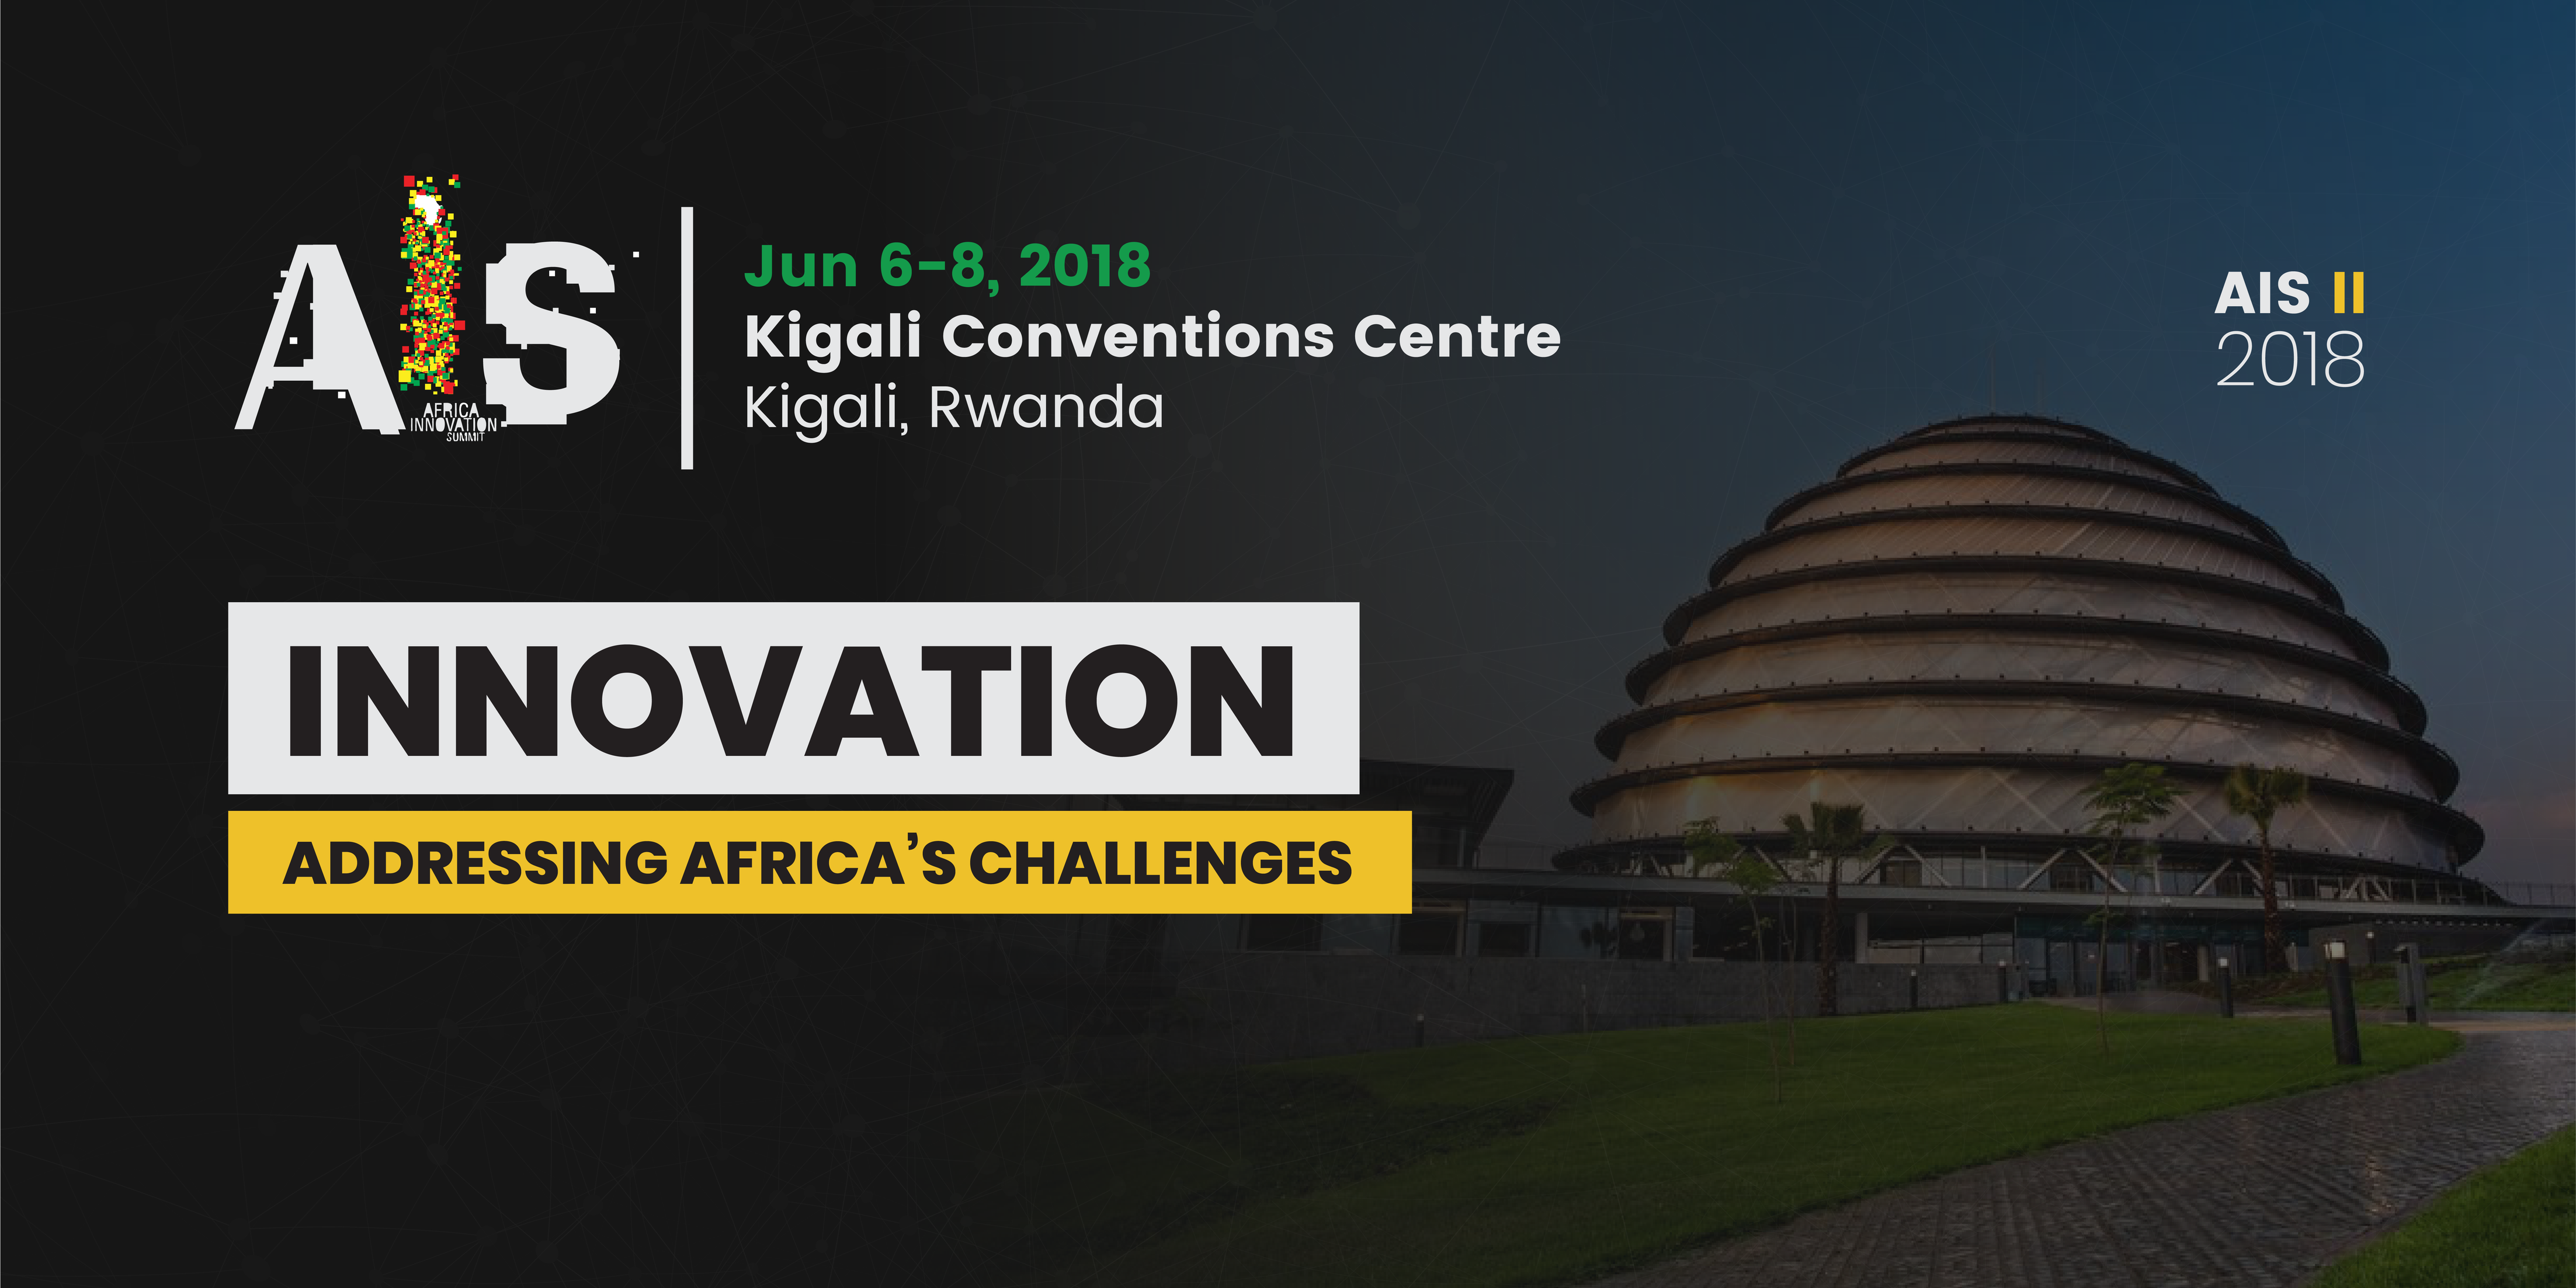 Call for Application Launched across Africa for Innovations Addressing Continent's Challenges